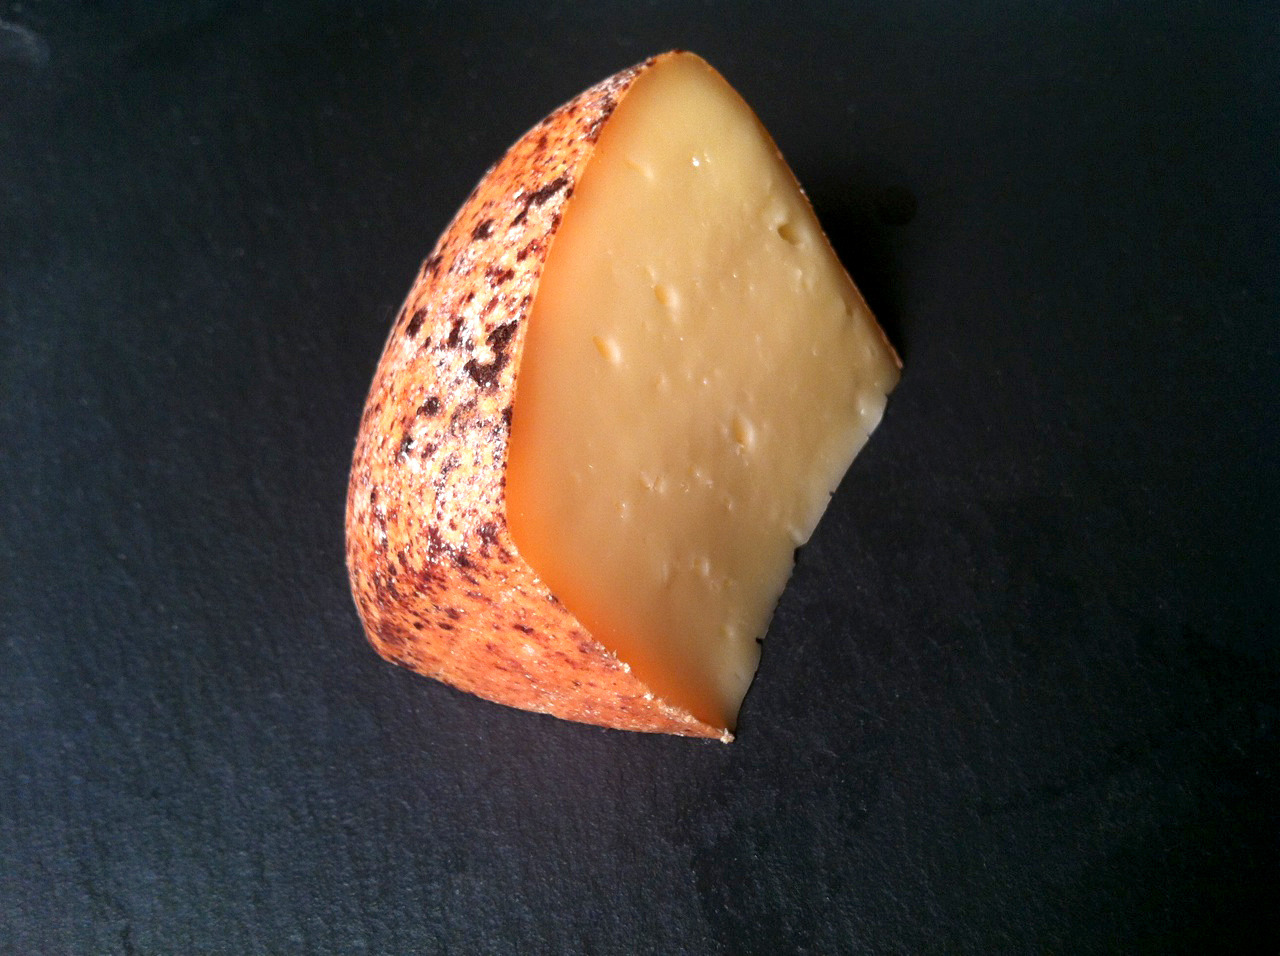 Another Rolf Beeler-affinaged cheese: Aarauer Bierdeckel, also known as Beermat, a washed-rind raw cow's milk cheese from Canton Aargau in Switzerland. Washed in unfermented wheat beer, it brings the elements of a traditional French washed rind together with the flavors and character of a trappist beer-washed cheese.  The amber-pink B.Linens rind, spotted with dark reddish-brown patches, is thin and lightly sticky covering a yellow paste, lightly eyed, firm at first and sagging softly as the cheese warms. A musty, yeasty aroma gives way to a pleasantly yeasty-sour, nutty, rich flavor with toasted undertones and a lingering finish.  Wonderful paired with beer (naturally).